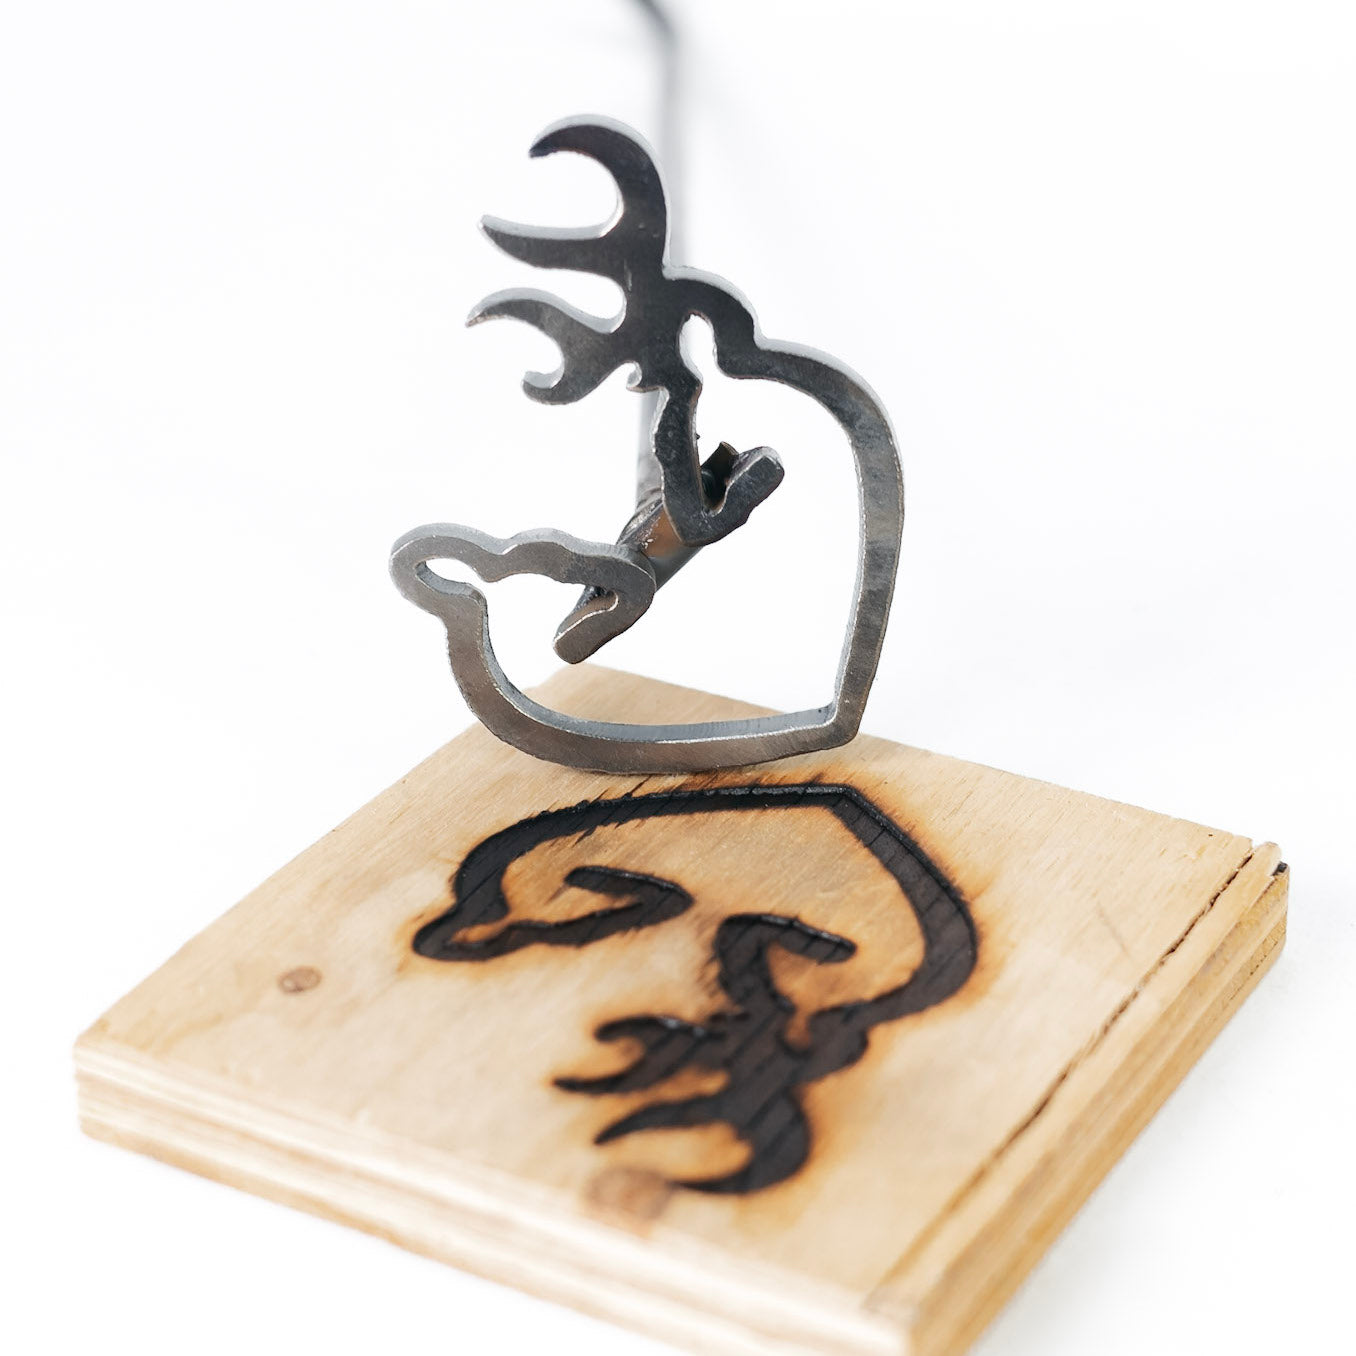 "Buck and Doe with Heart Brand - 4"" x 3"" - BBQ, Crafts, Woodworking Projects - The Heritage Forge"